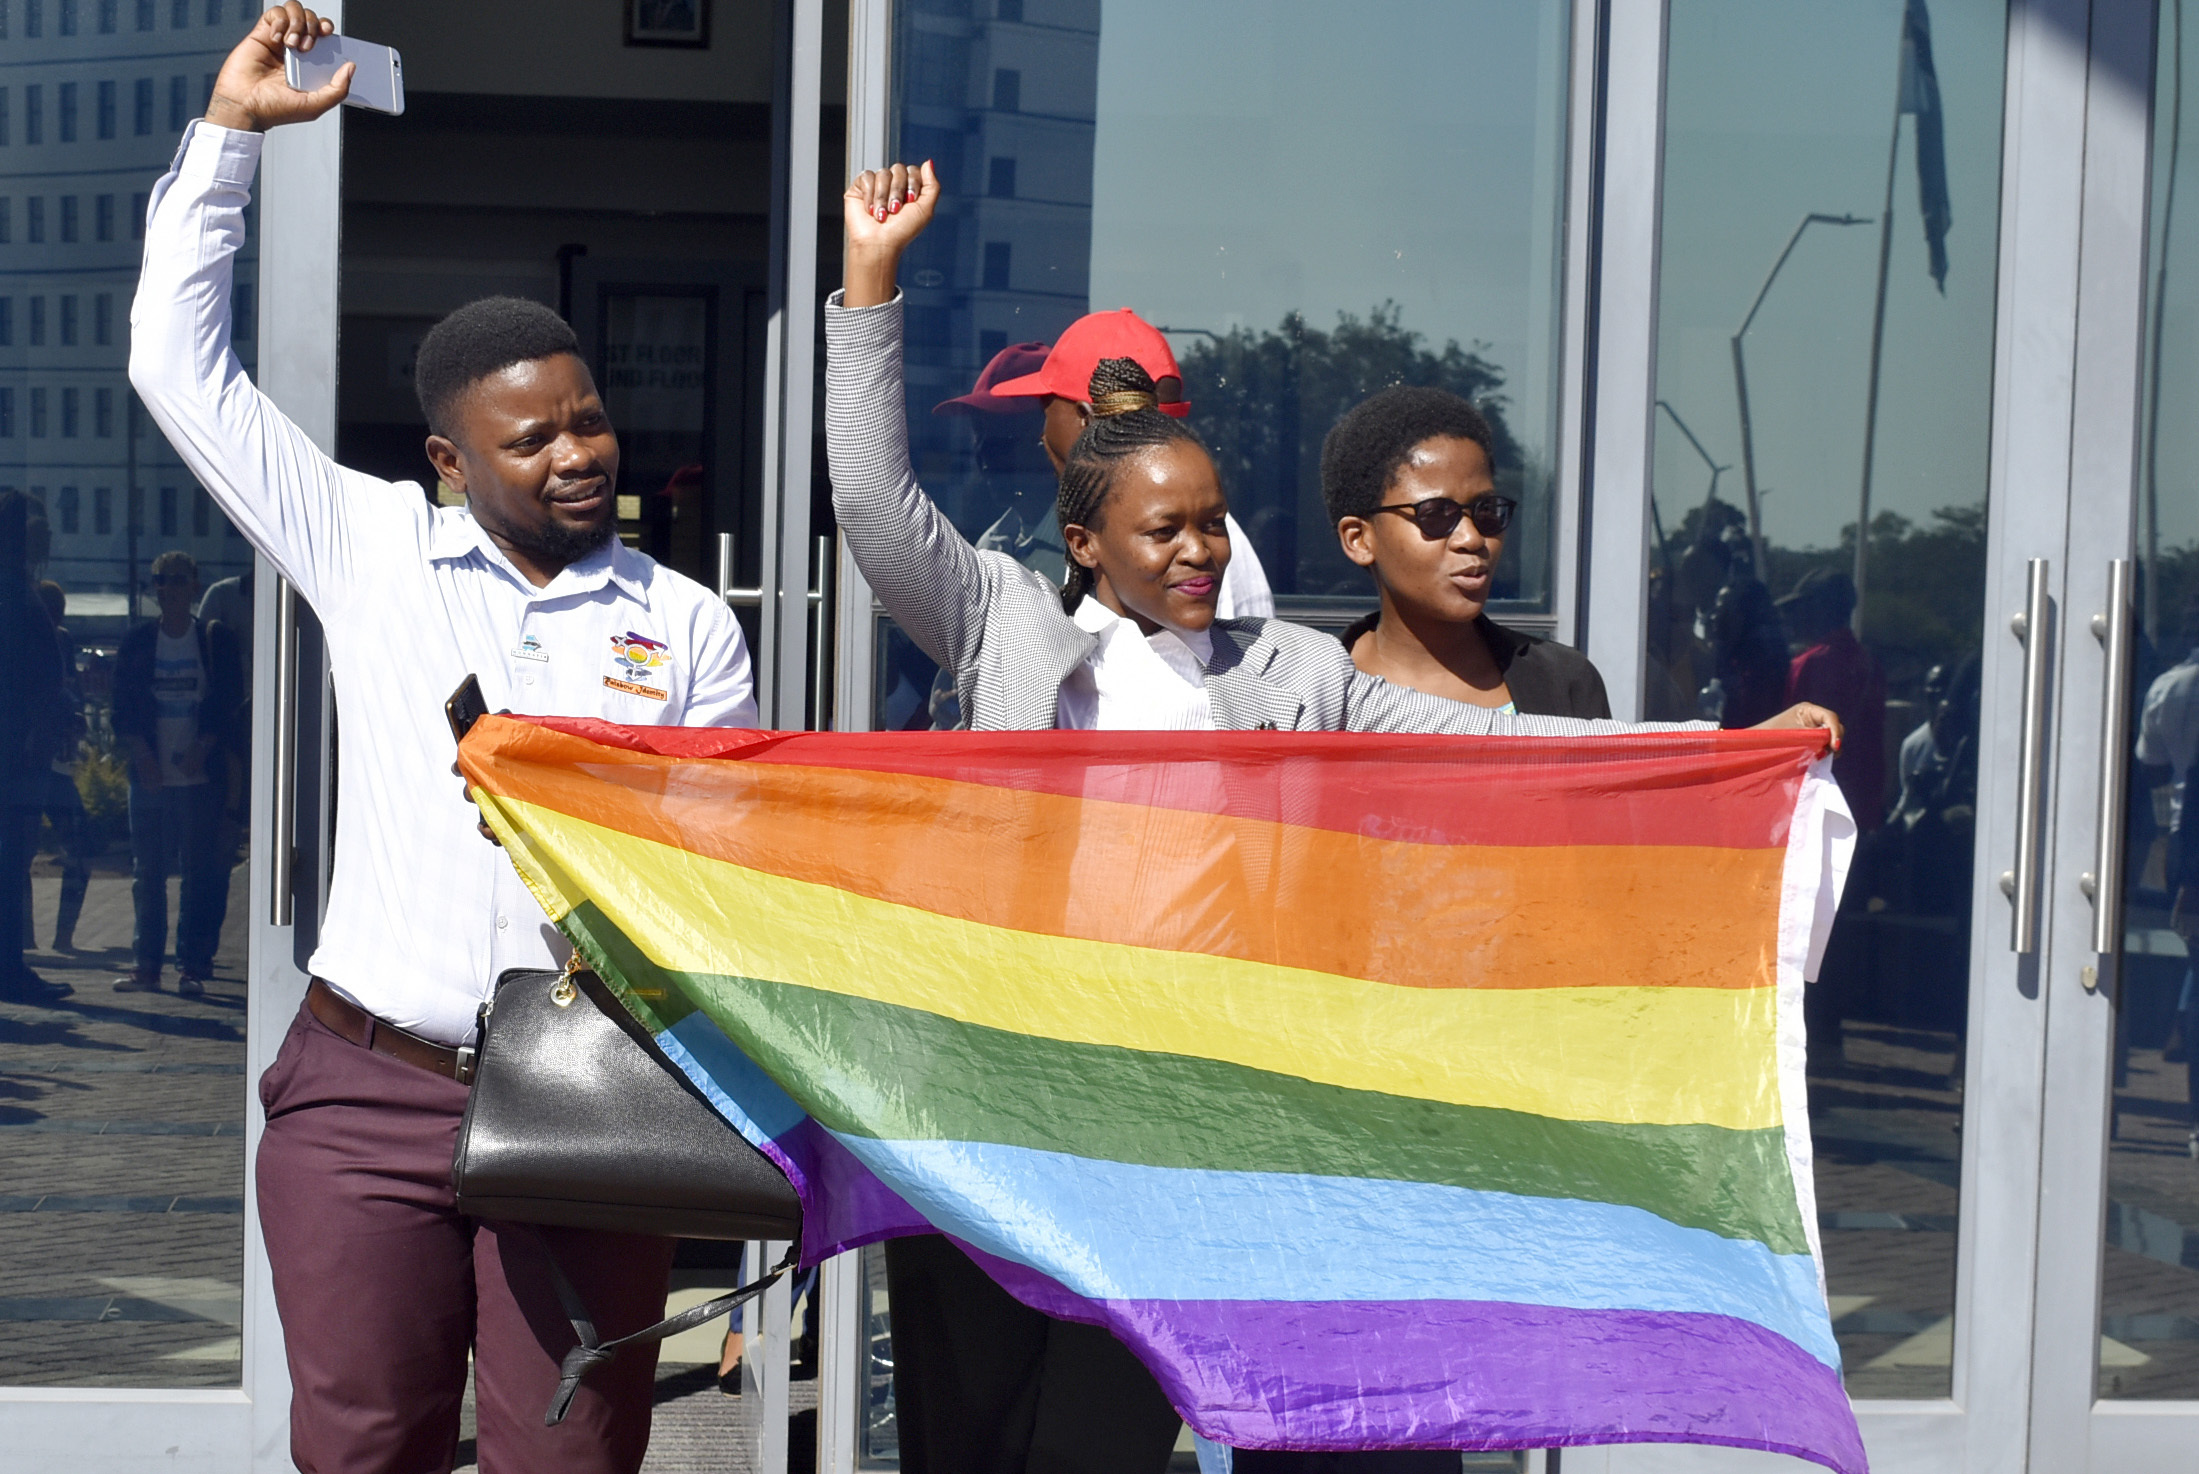 Activists celebrate outside the High Court in Gaborone, Botswana, on June 11, 2019. Botswana became the latest country to decriminalize gay sex when the High Court rejected as unconstitutional sections of the penal code that punish same-sex relations with up to seven years in prison.